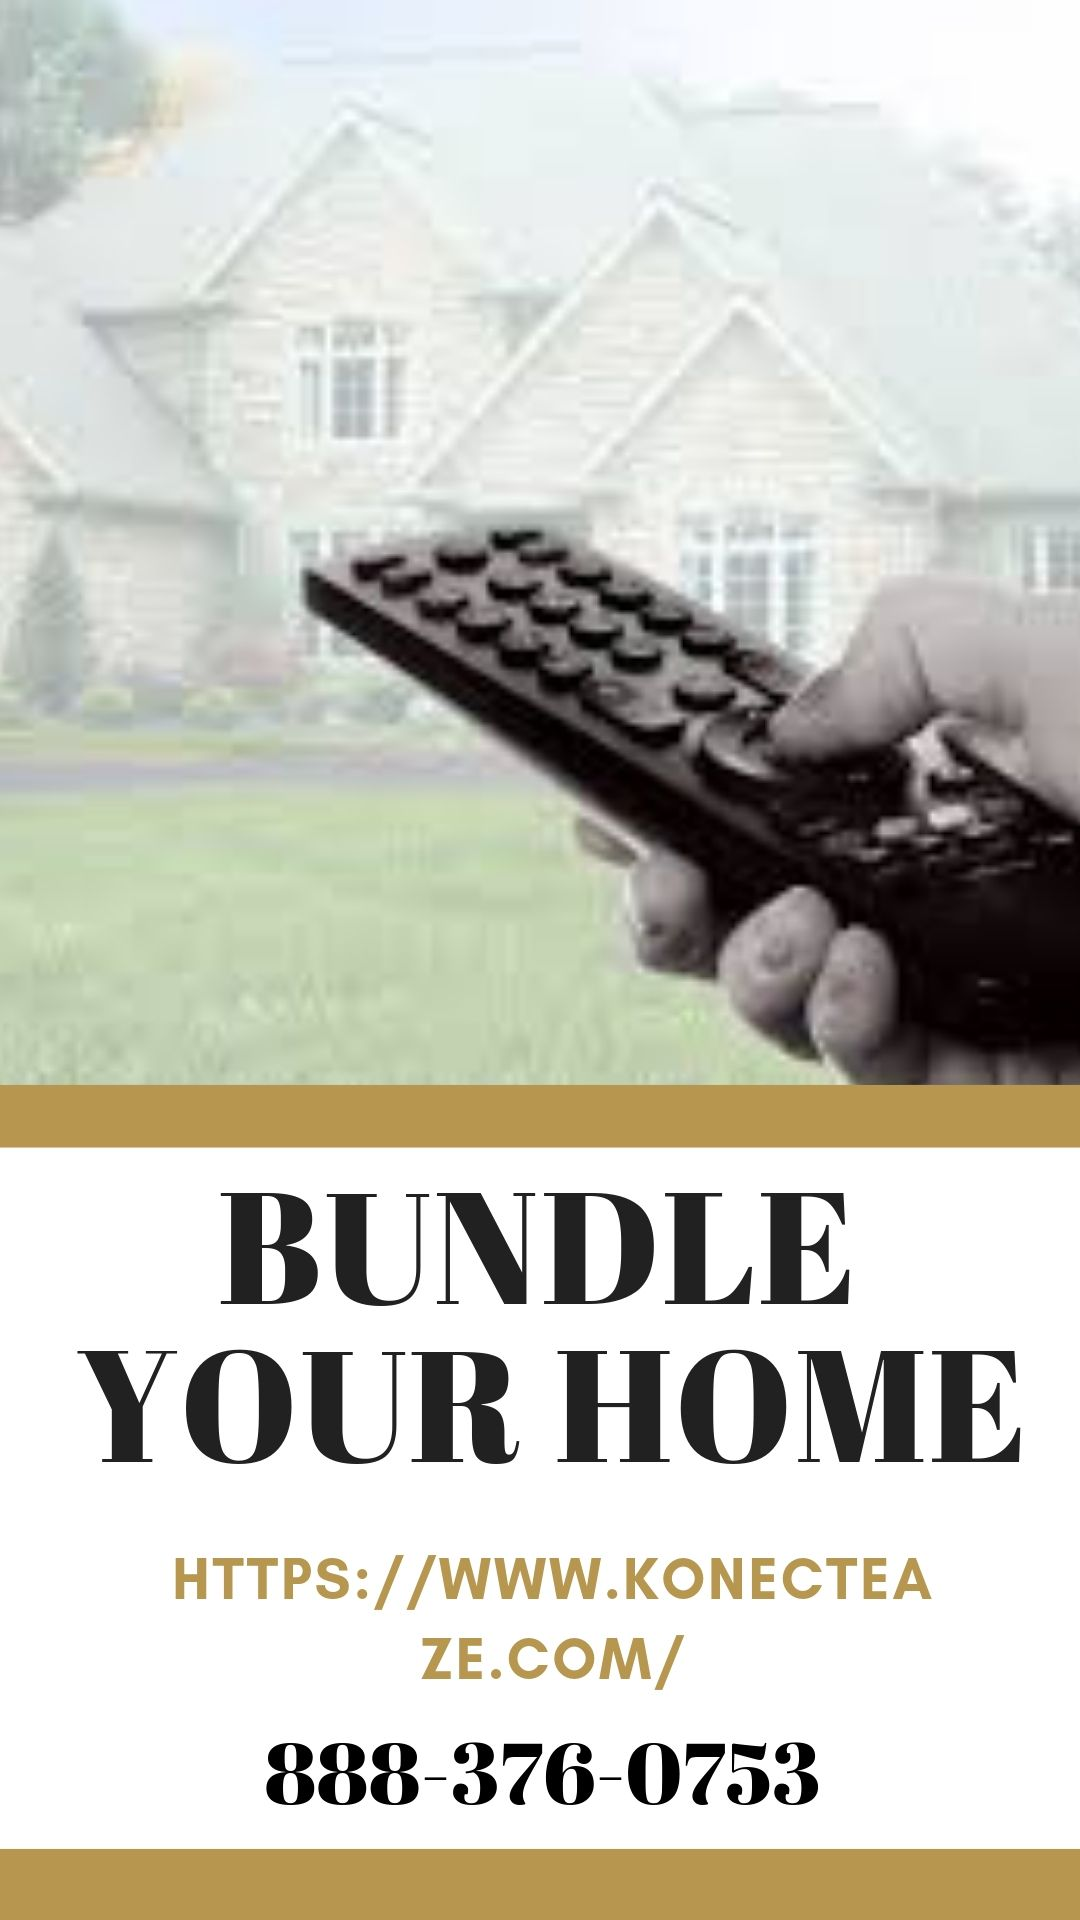 Bundle Your Home Find the best deals in your area